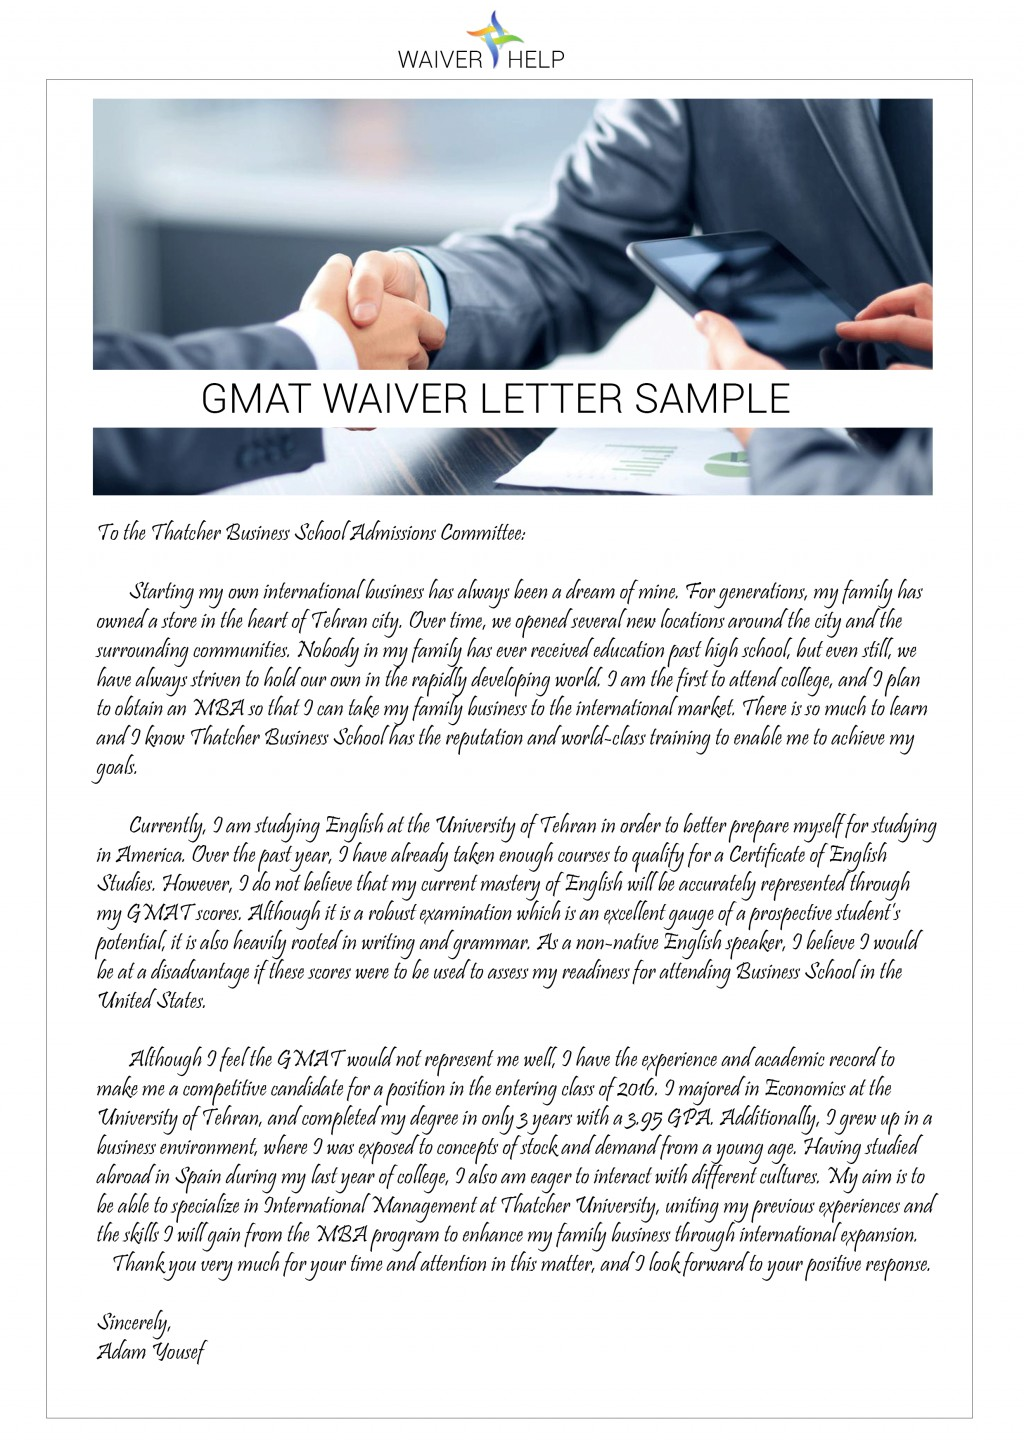 009 Gmat Essay Example Awesome Sample Gre Essays Resume Daily L Astounding Pdf Awa Score 4.5 Large